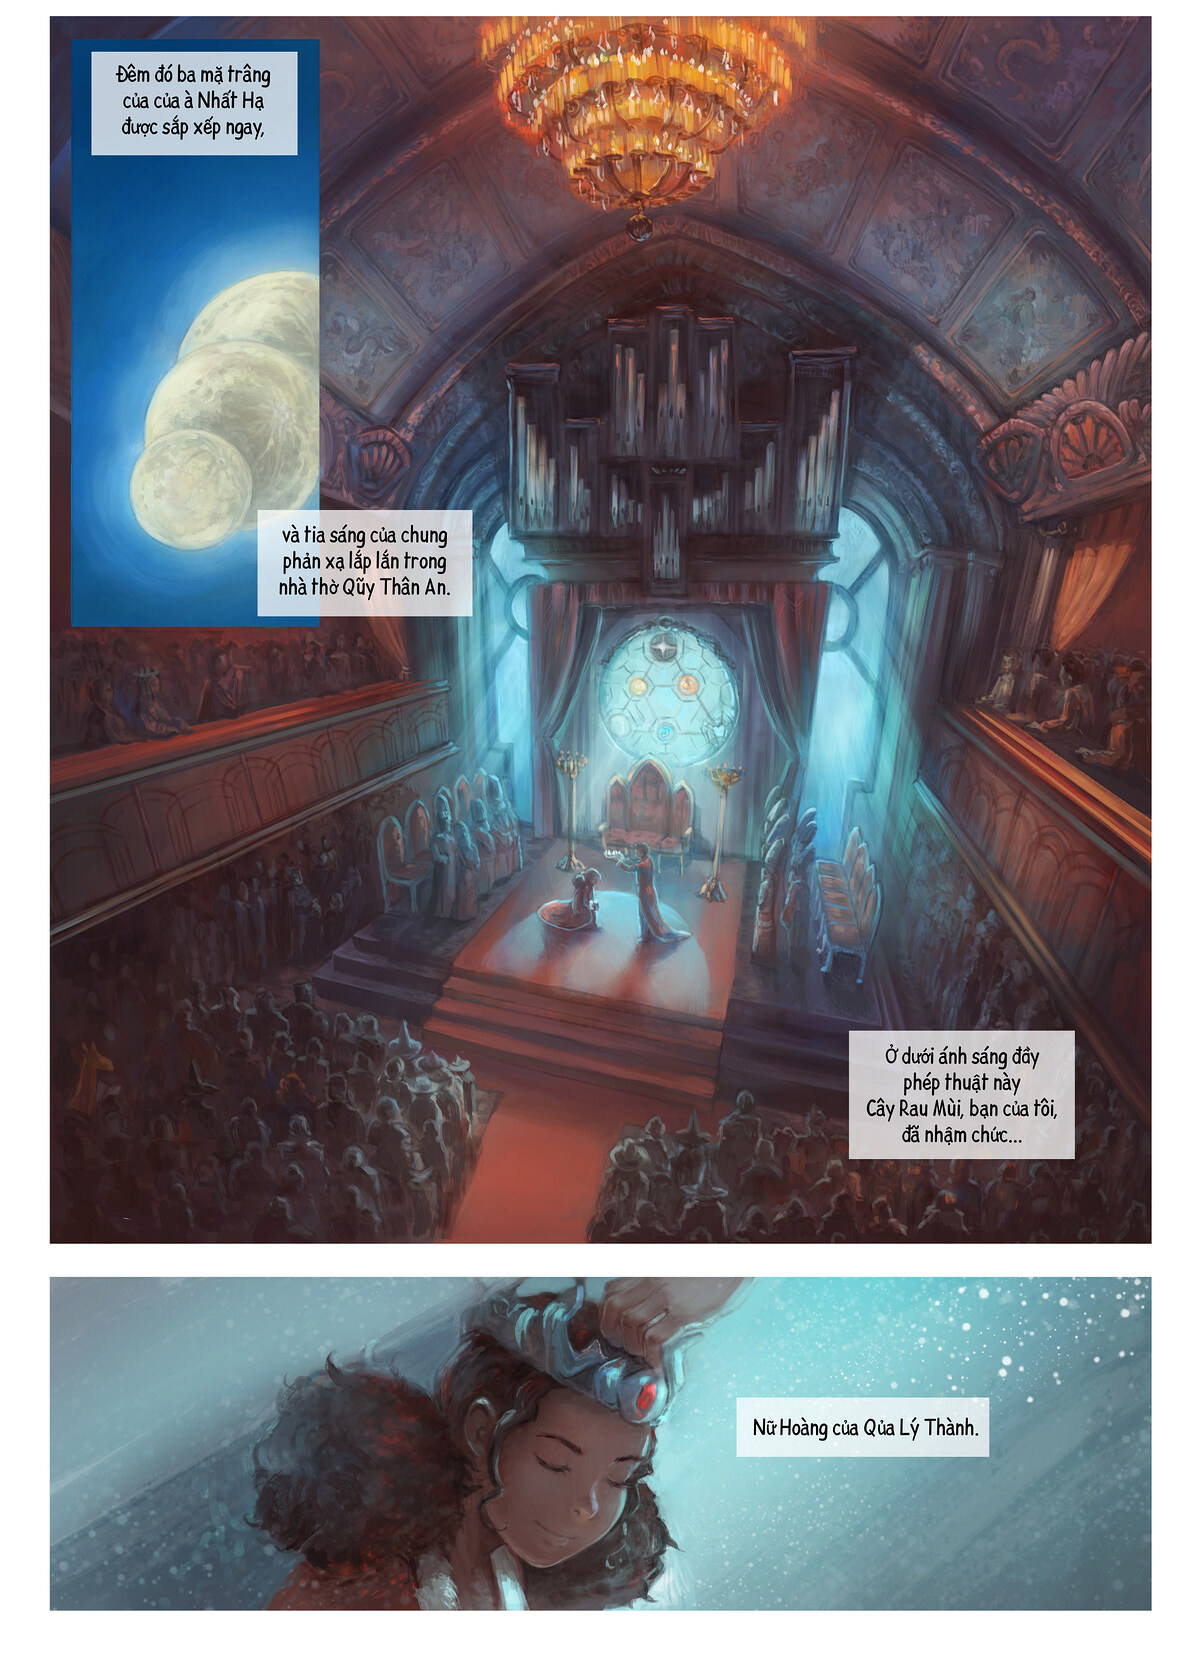 A webcomic page of Pepper&Carrot, Tập 28 [vi], trang 1